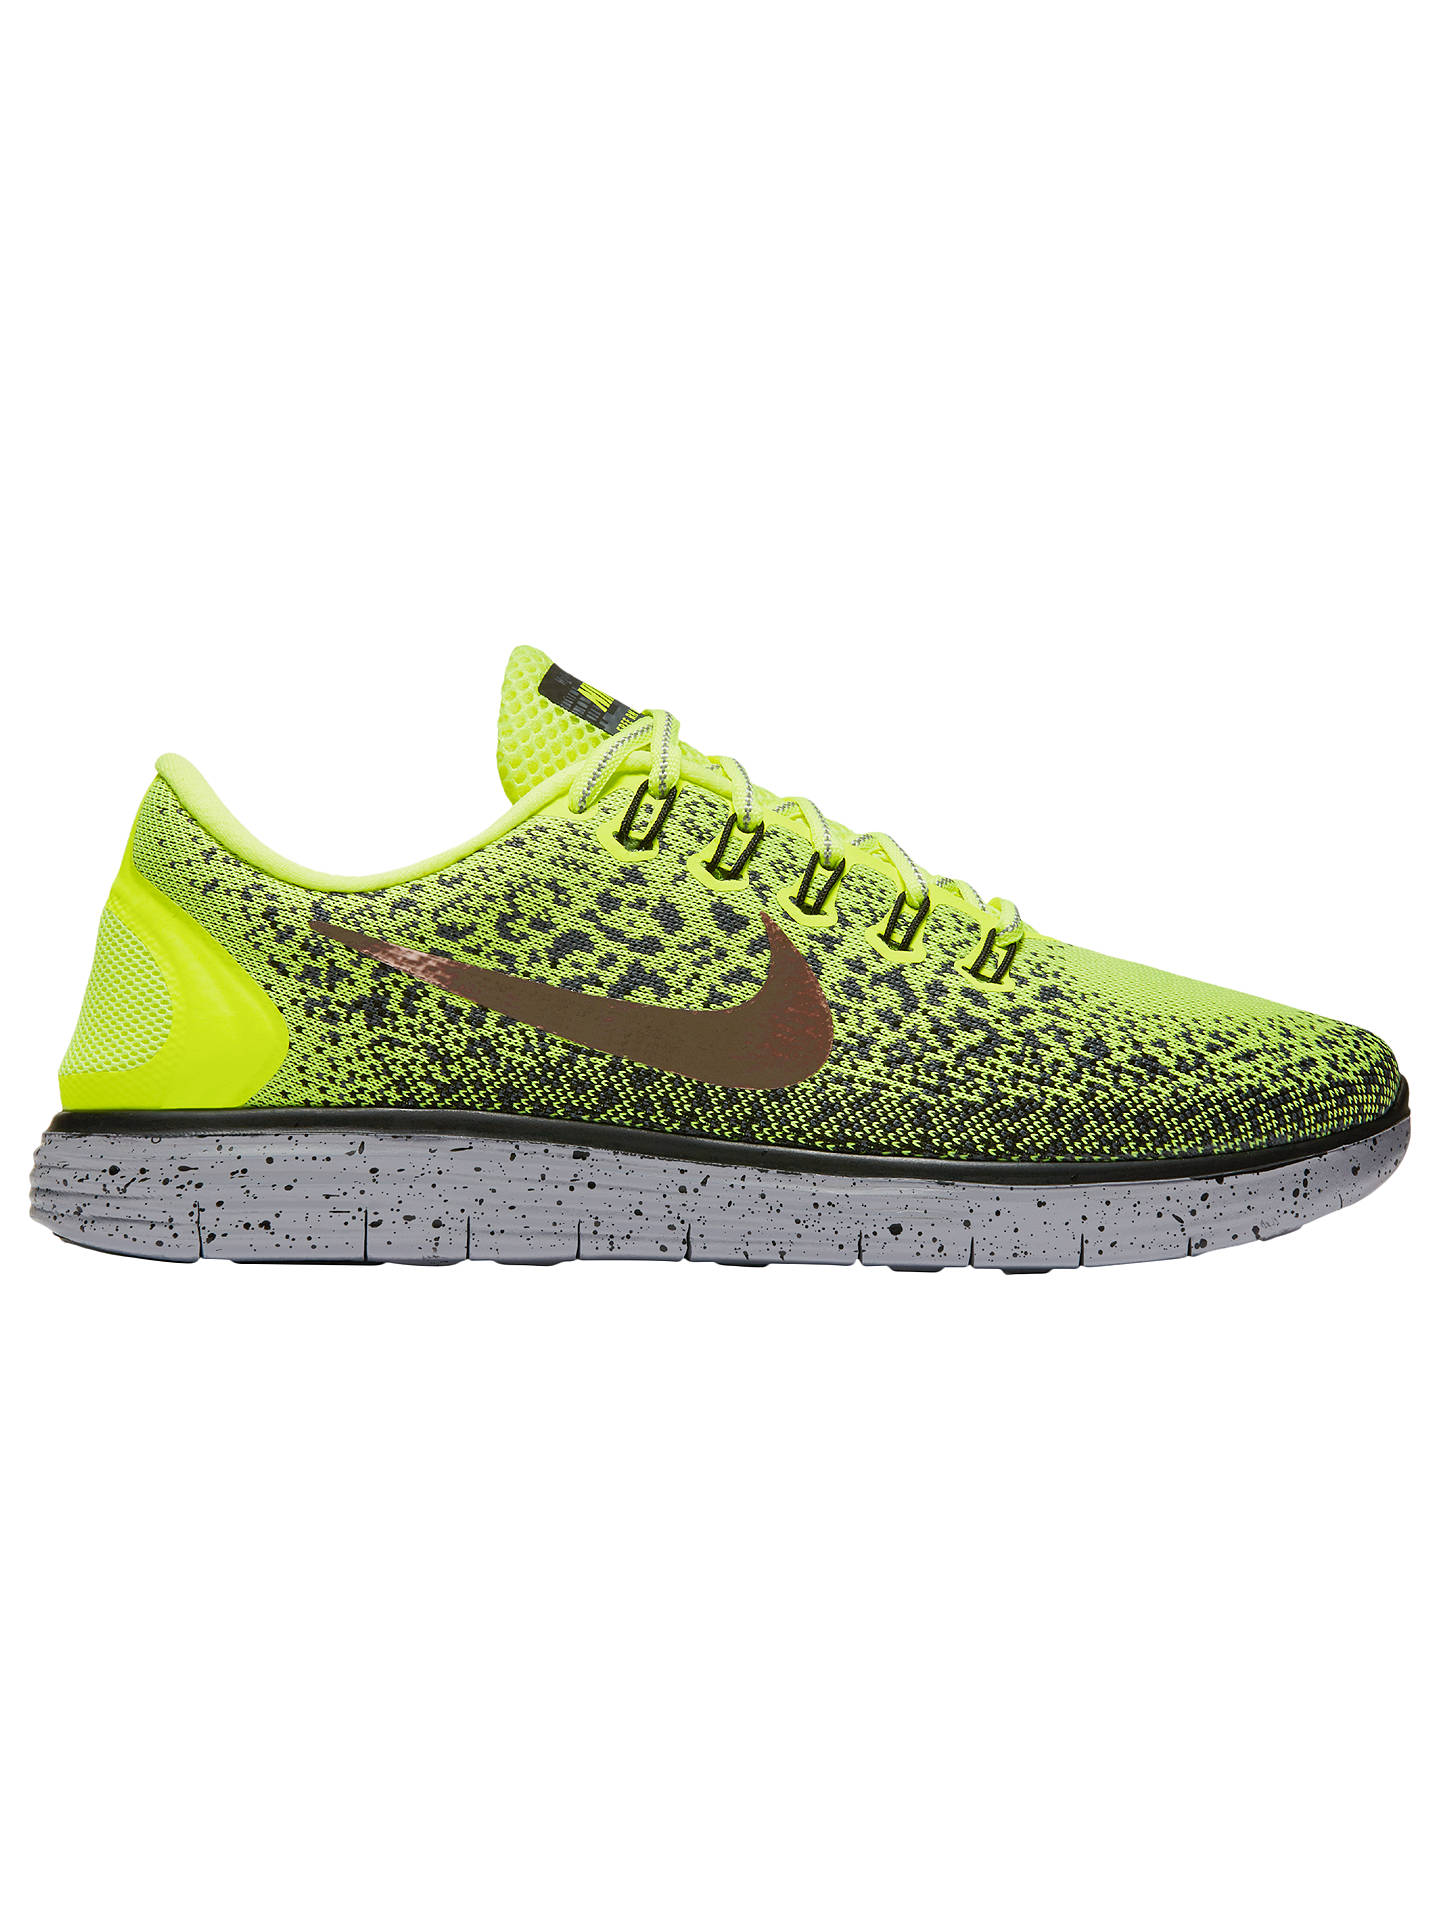 18de92f8746 Buy Nike Free RN Distance Shield Men s Running Shoes